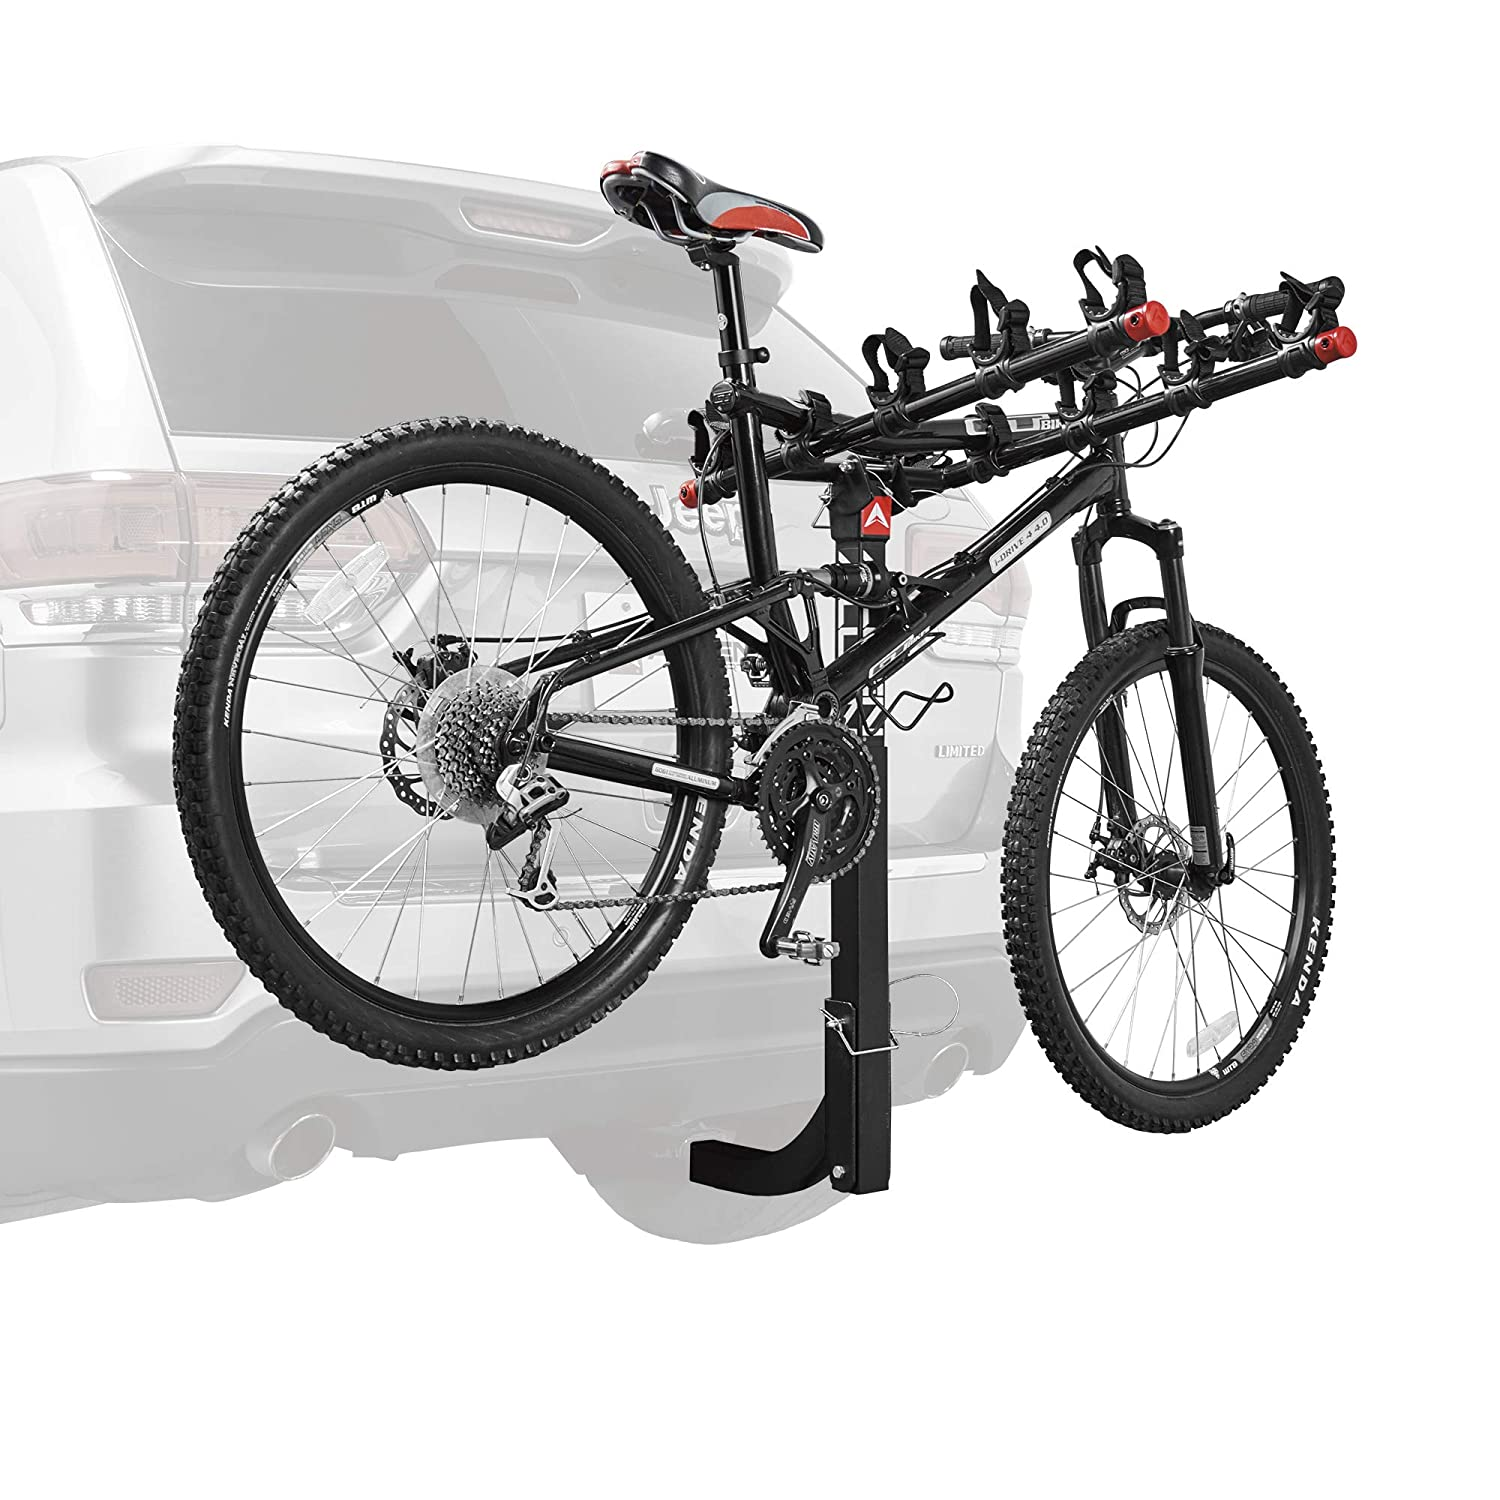 27ab0073d40 Amazon.com : Allen Sports Deluxe 5-Bike Hitch Mount Rack with 2-Inch  Receiver : Automotive